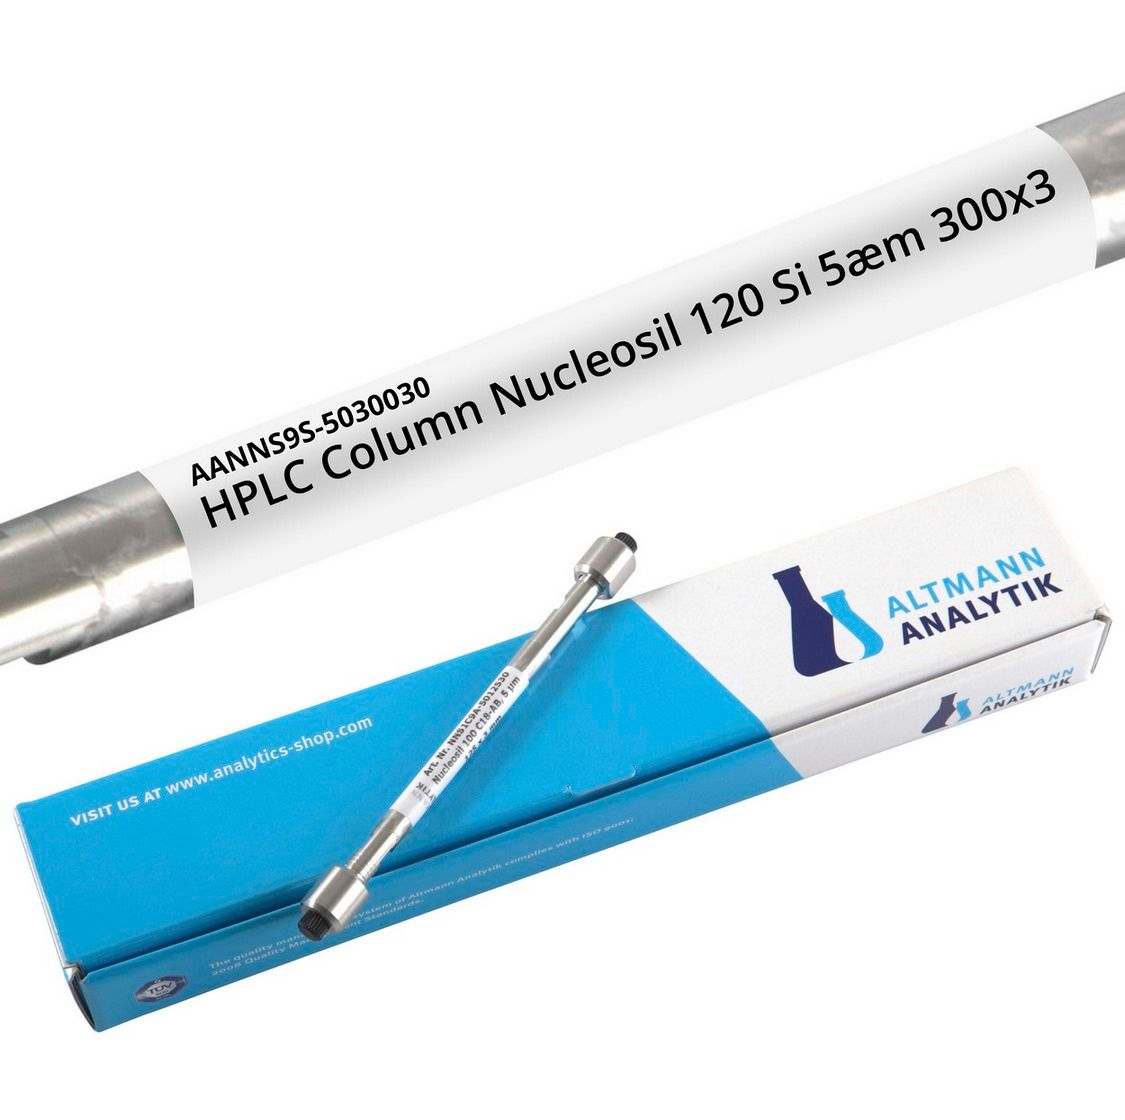 HPLC Column Nucleosil 120 Si 5µm 300x3 mm, 120A